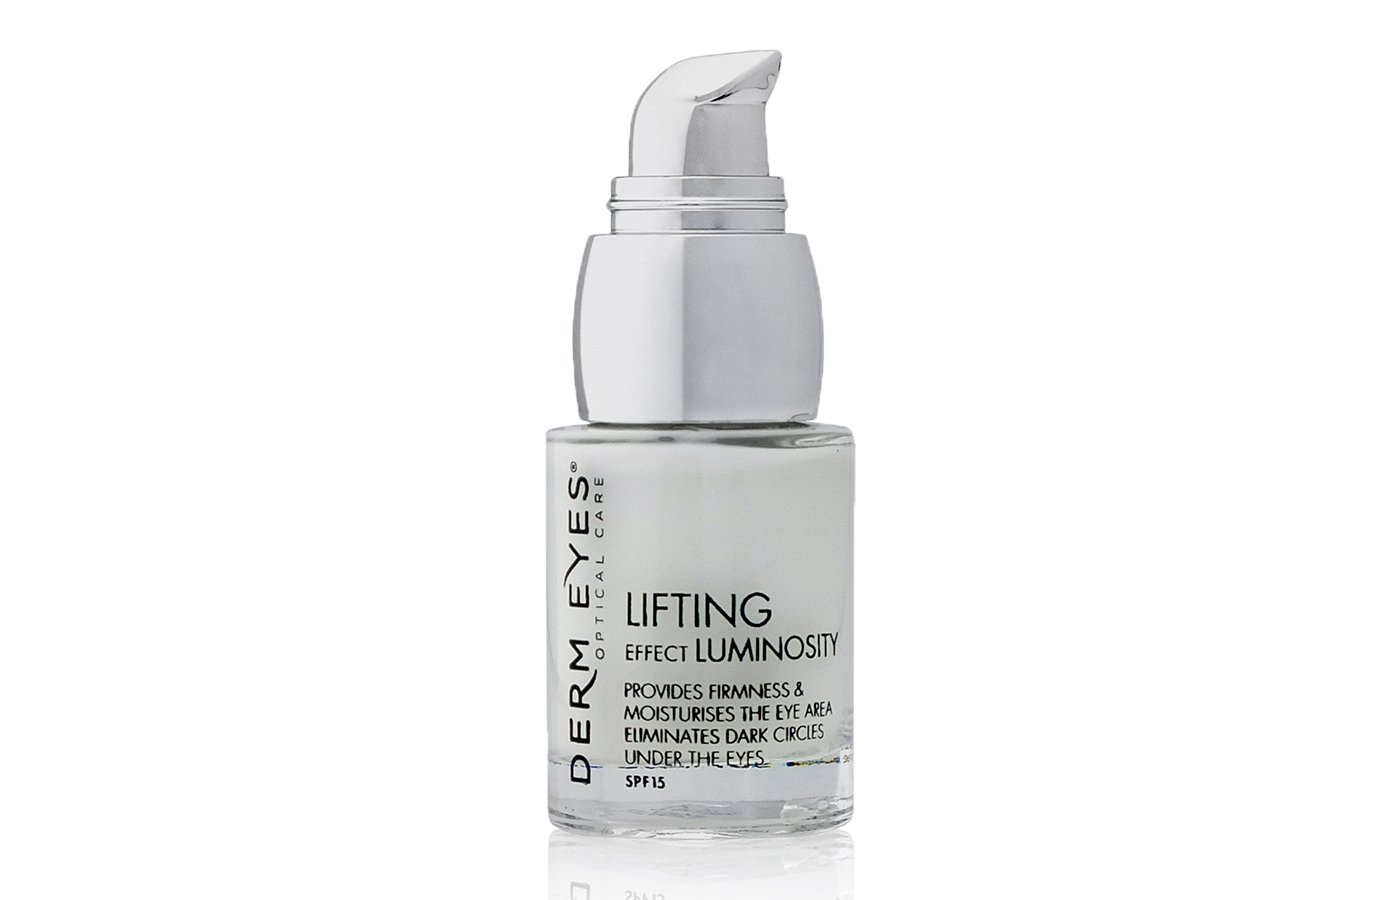 DERMEYES LIFTING EFFECTO LUMINOSITY  15ml